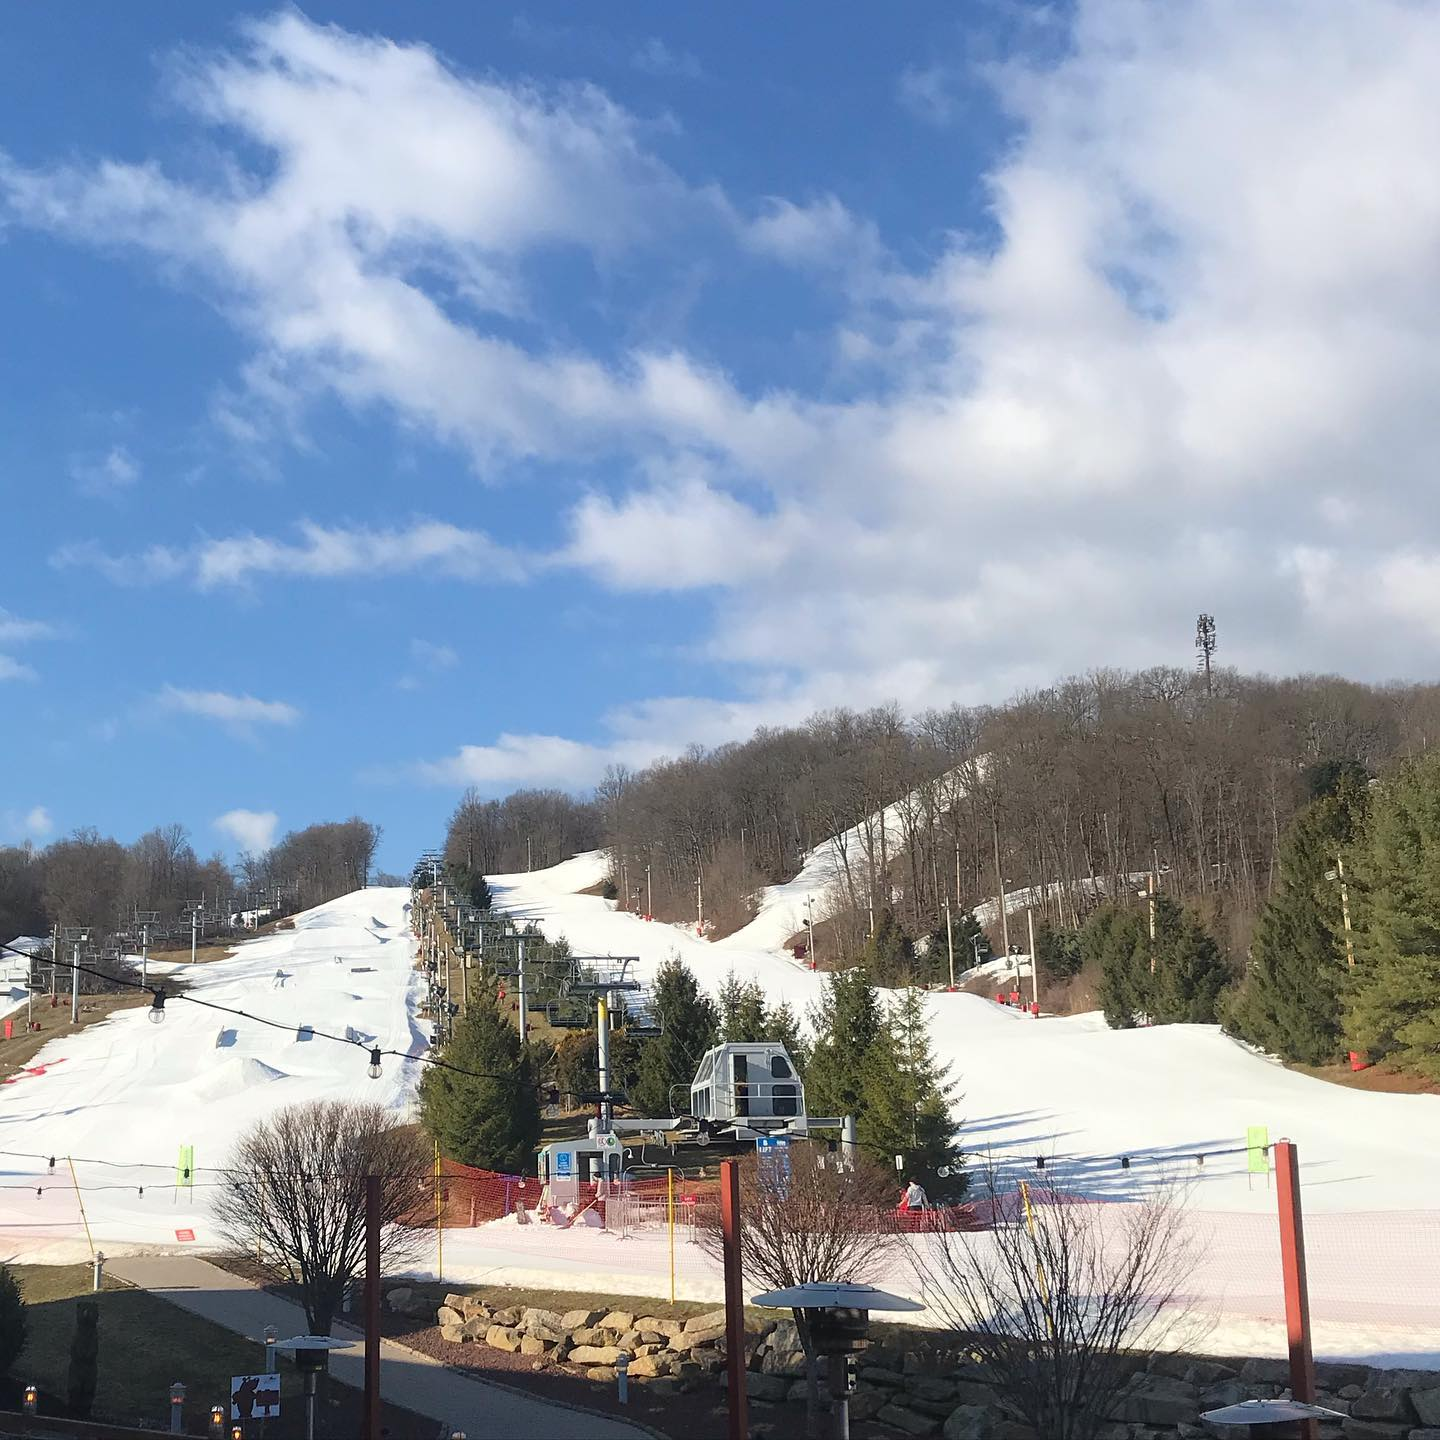 Image of artificial snow covering Bear Creek Mountain Resort in Pennsylvania